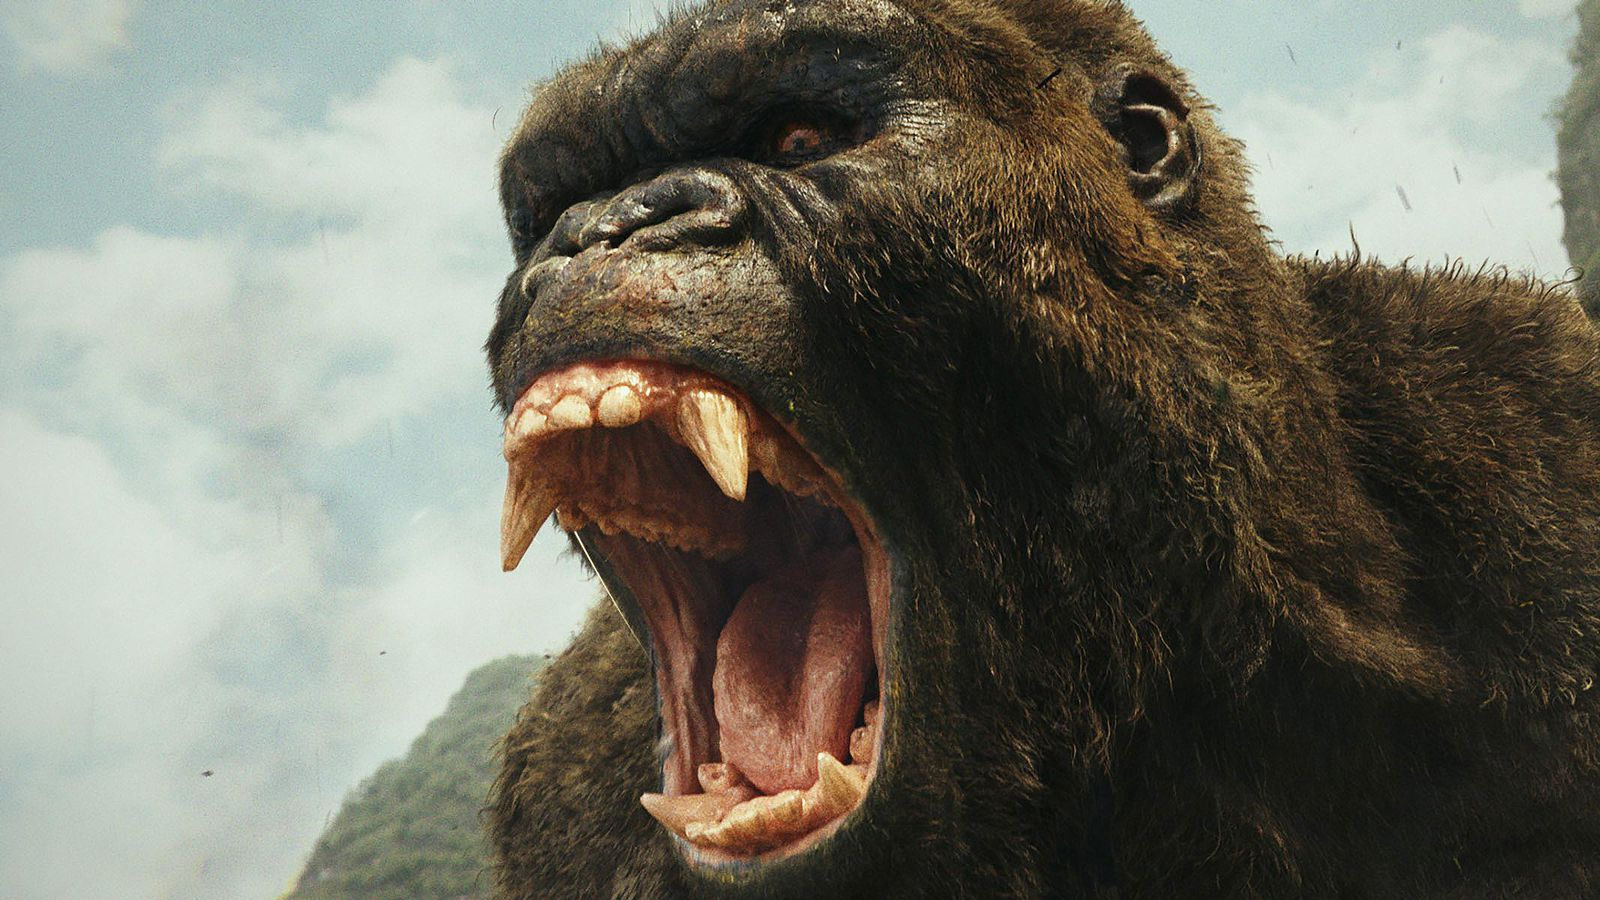 King Kong is a chest-beating reminder that visual effects can be as engaging as human actors - Vox